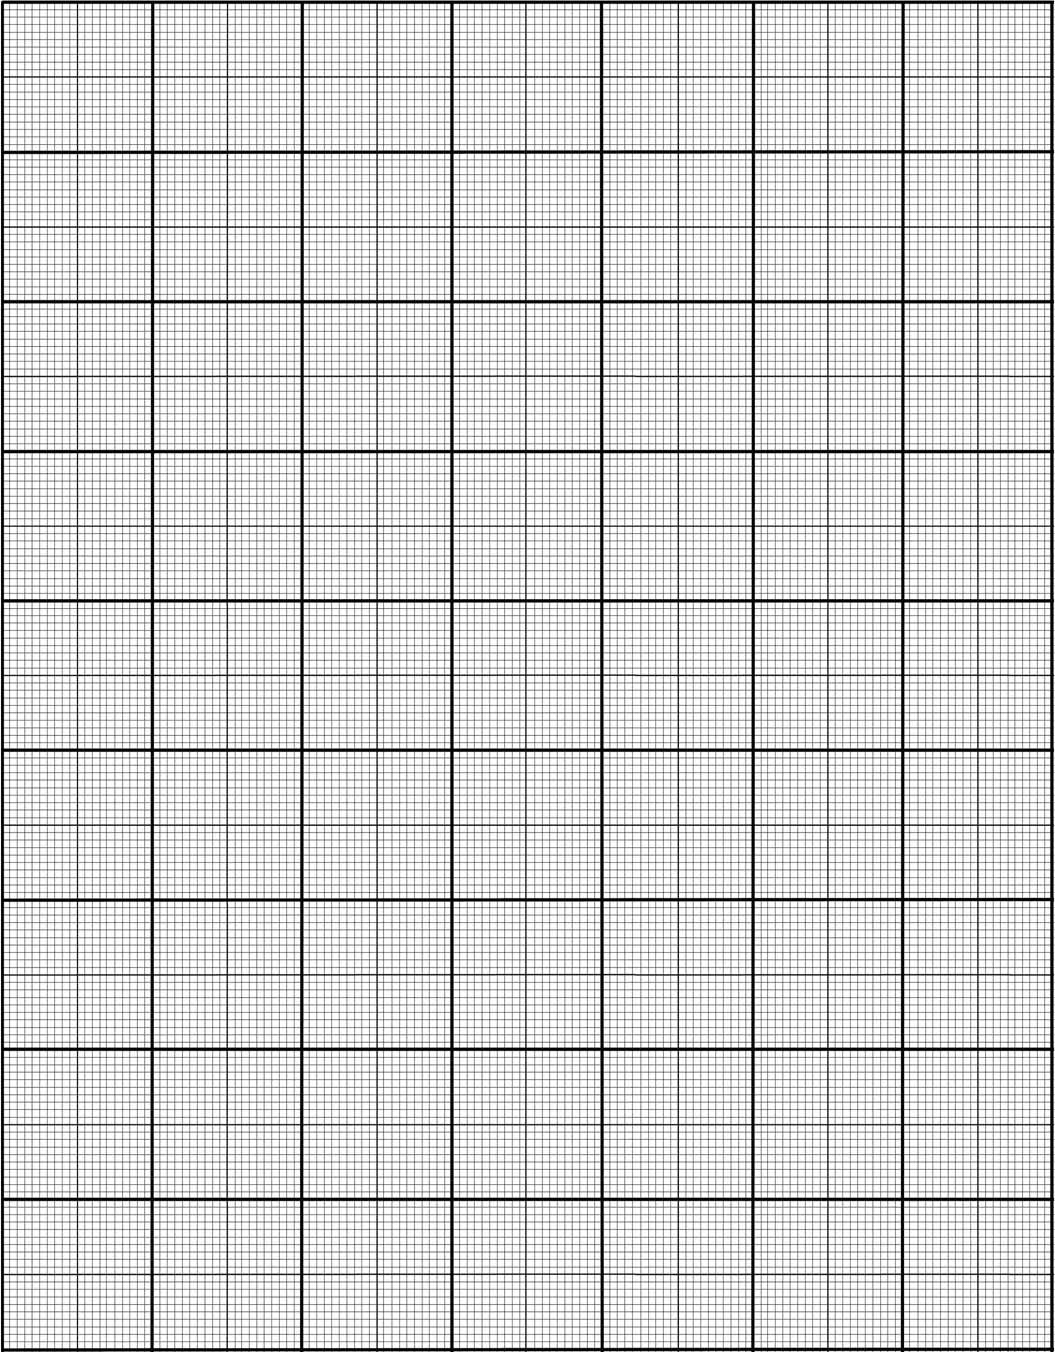 High Quality Printable Graph Paper HD Wallpapers Download Free Printable Graph Paper  Tumblr   Pinterest Hd Wallpapers